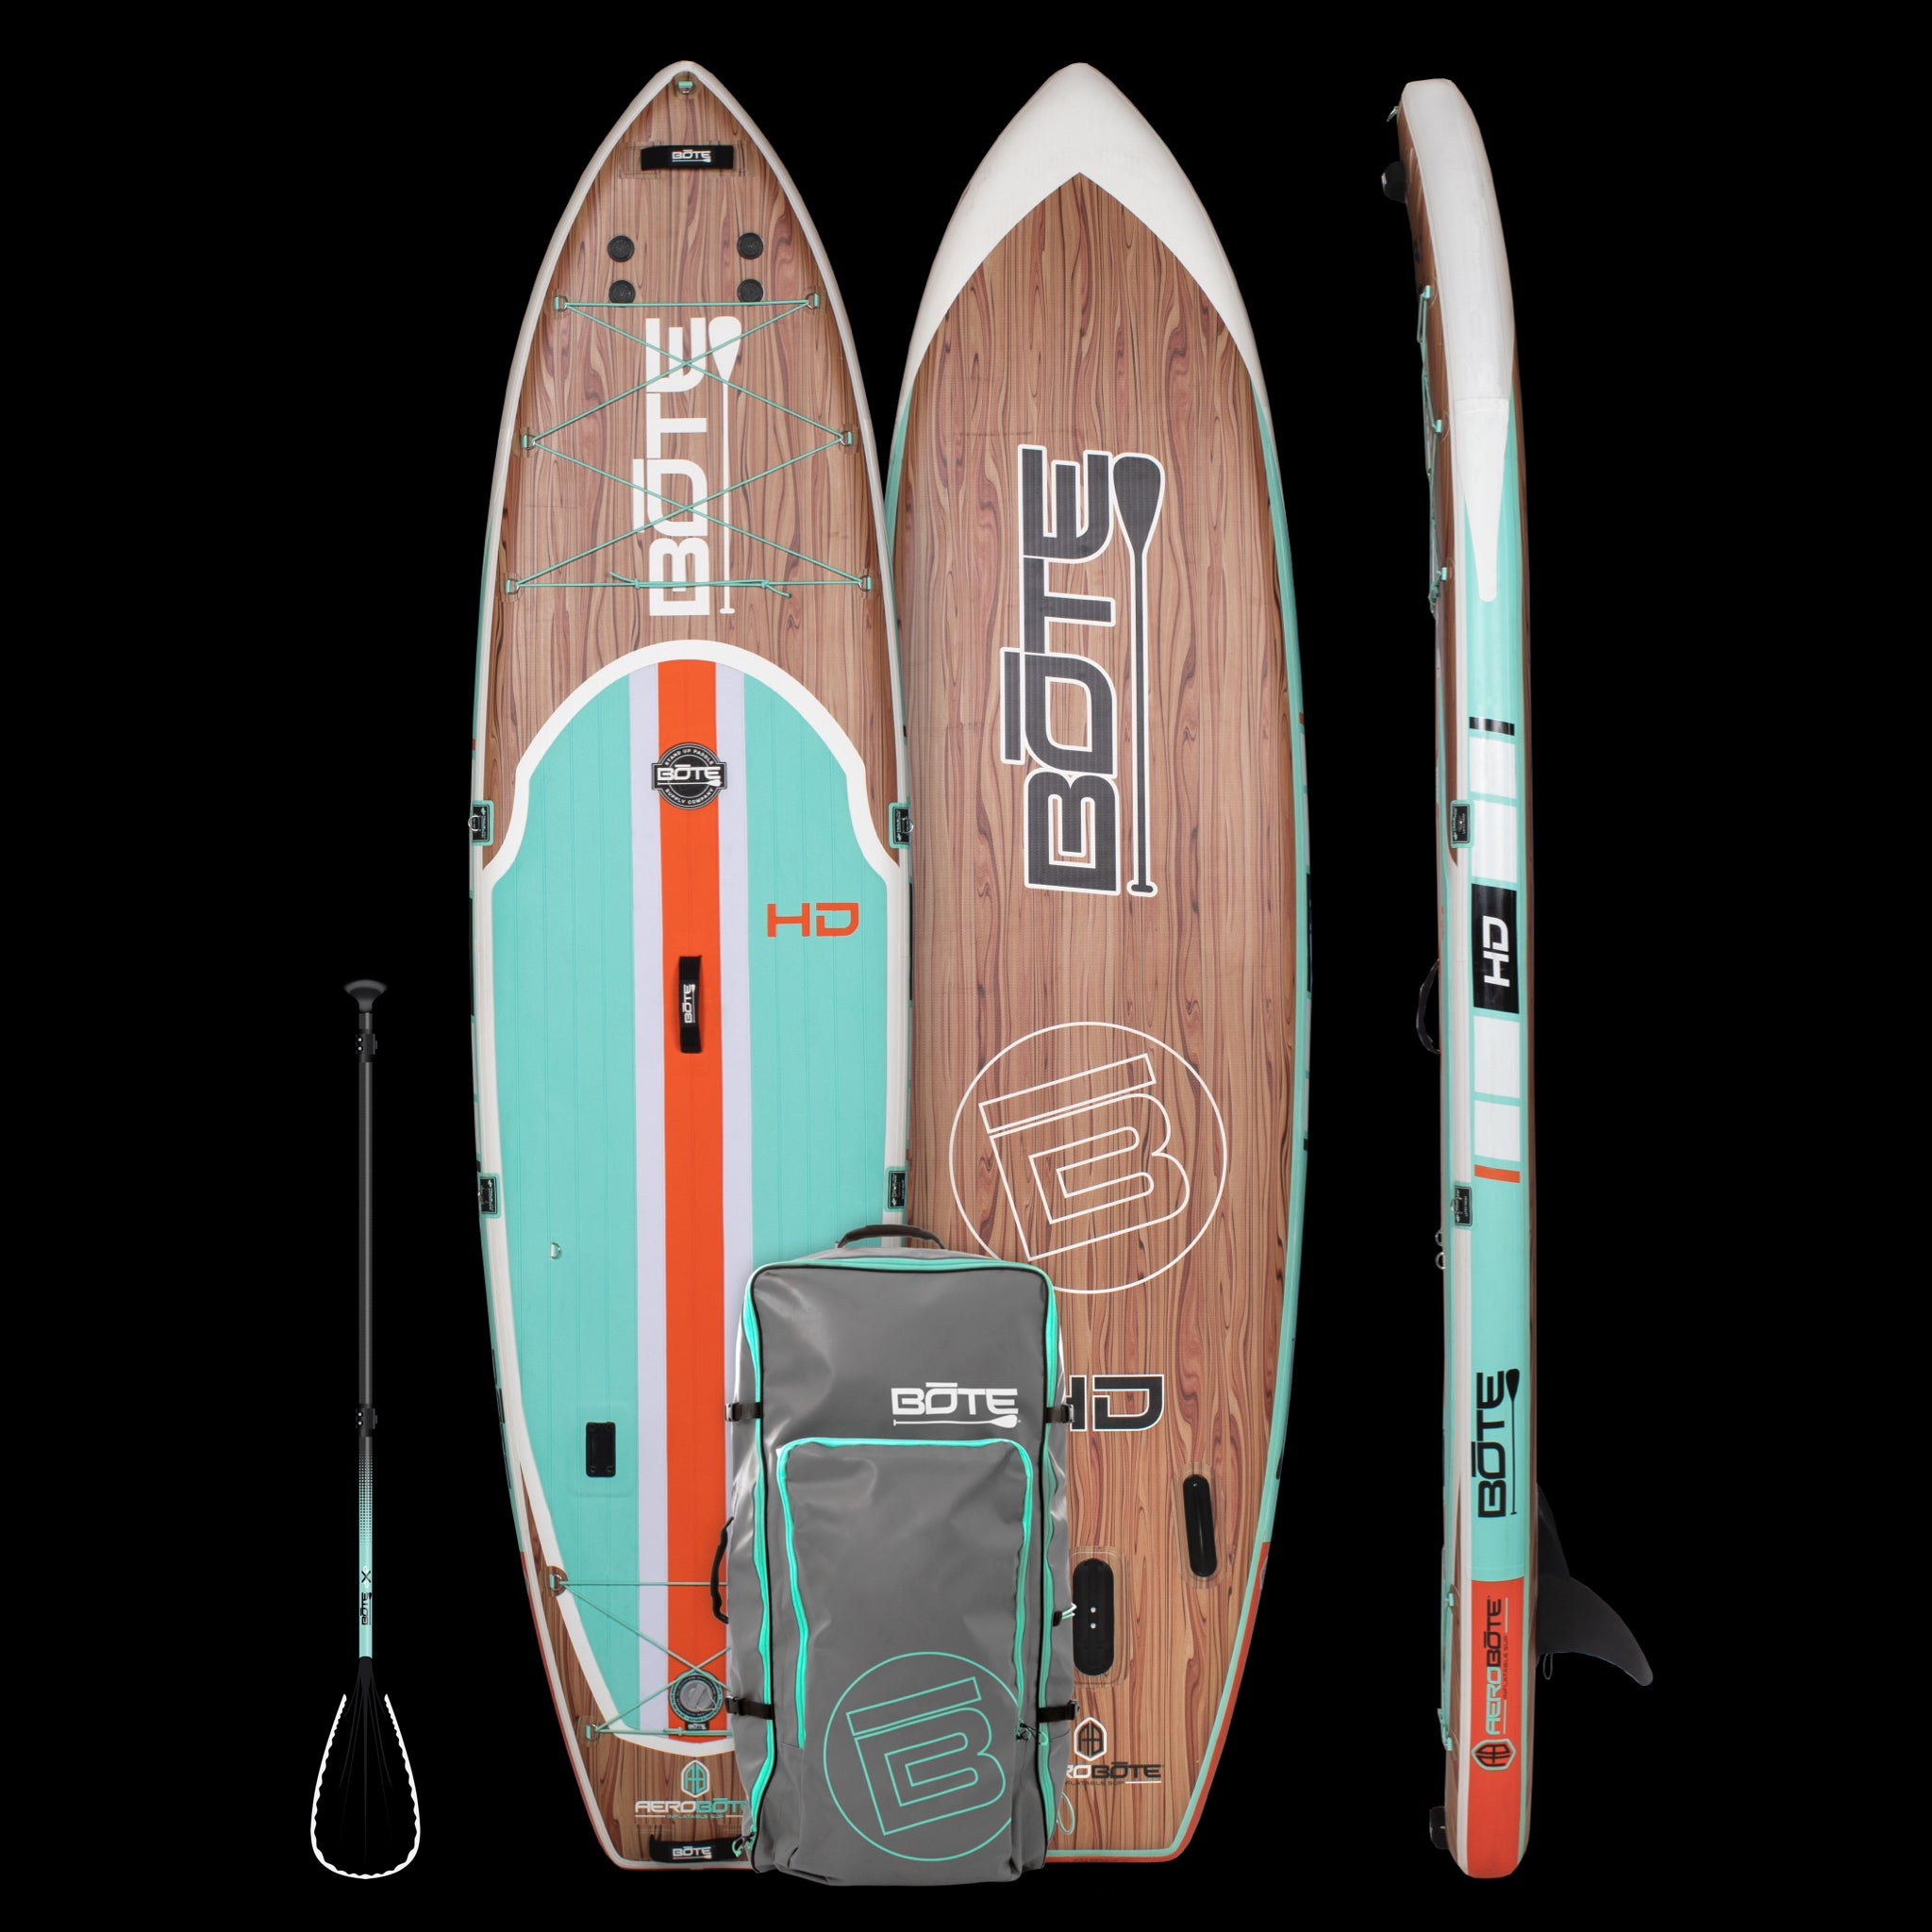 HD Aero Inflatable Paddle Board